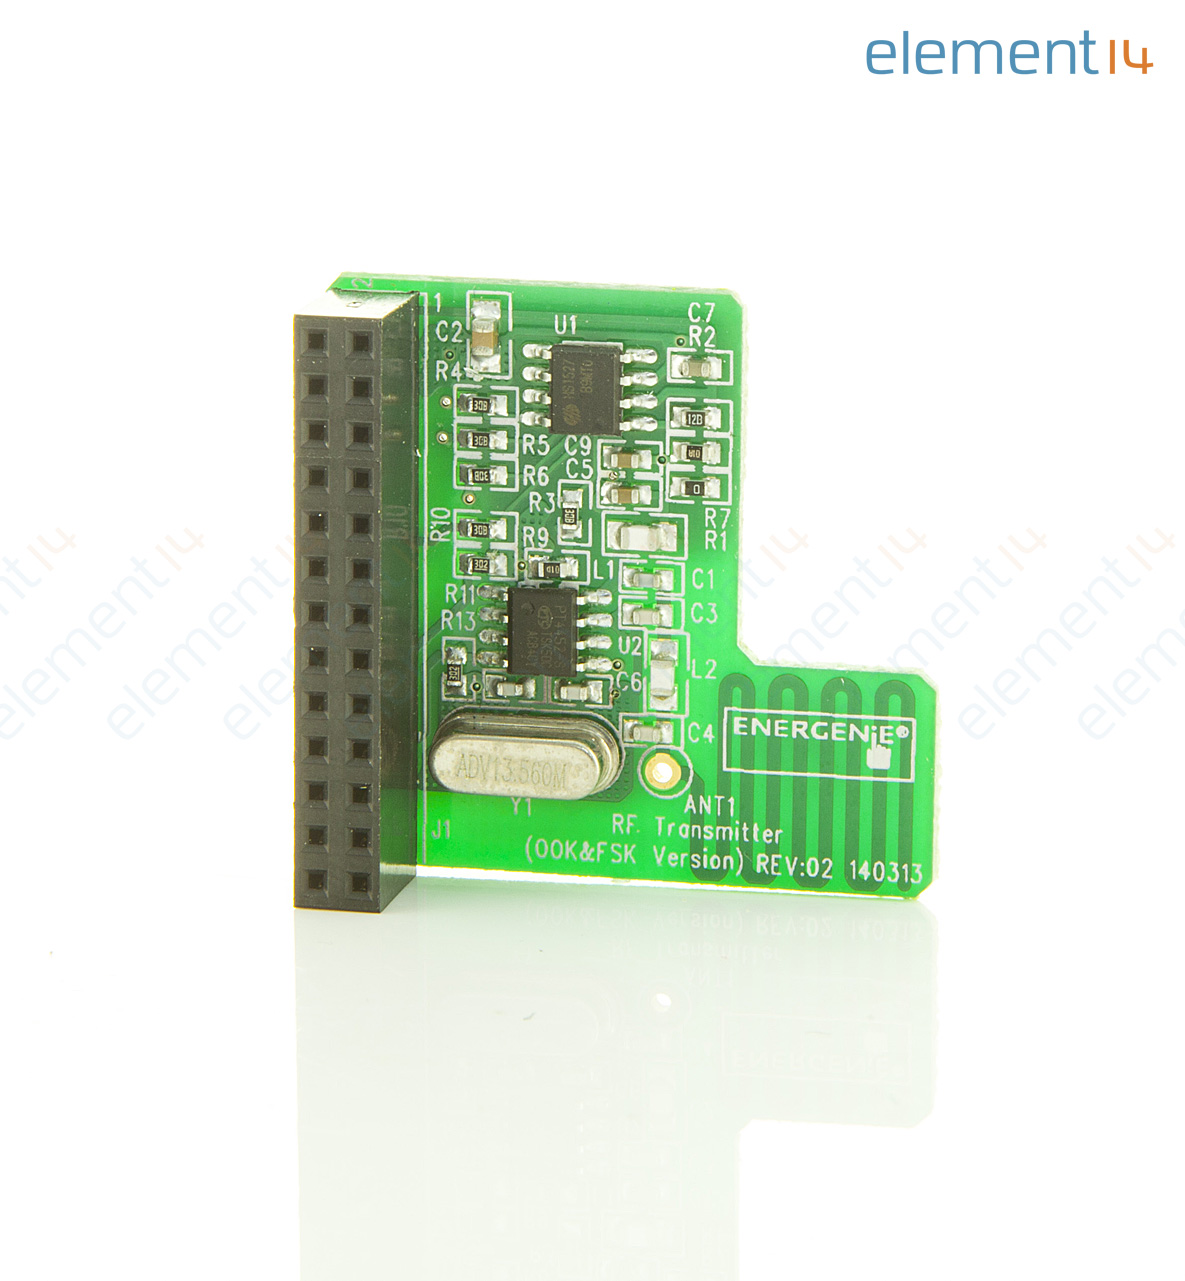 Ener314 Energenie Daughter Board Pi Mote Control Rf Electronics Learning Circuits Webonly Products Technology Add To Compare